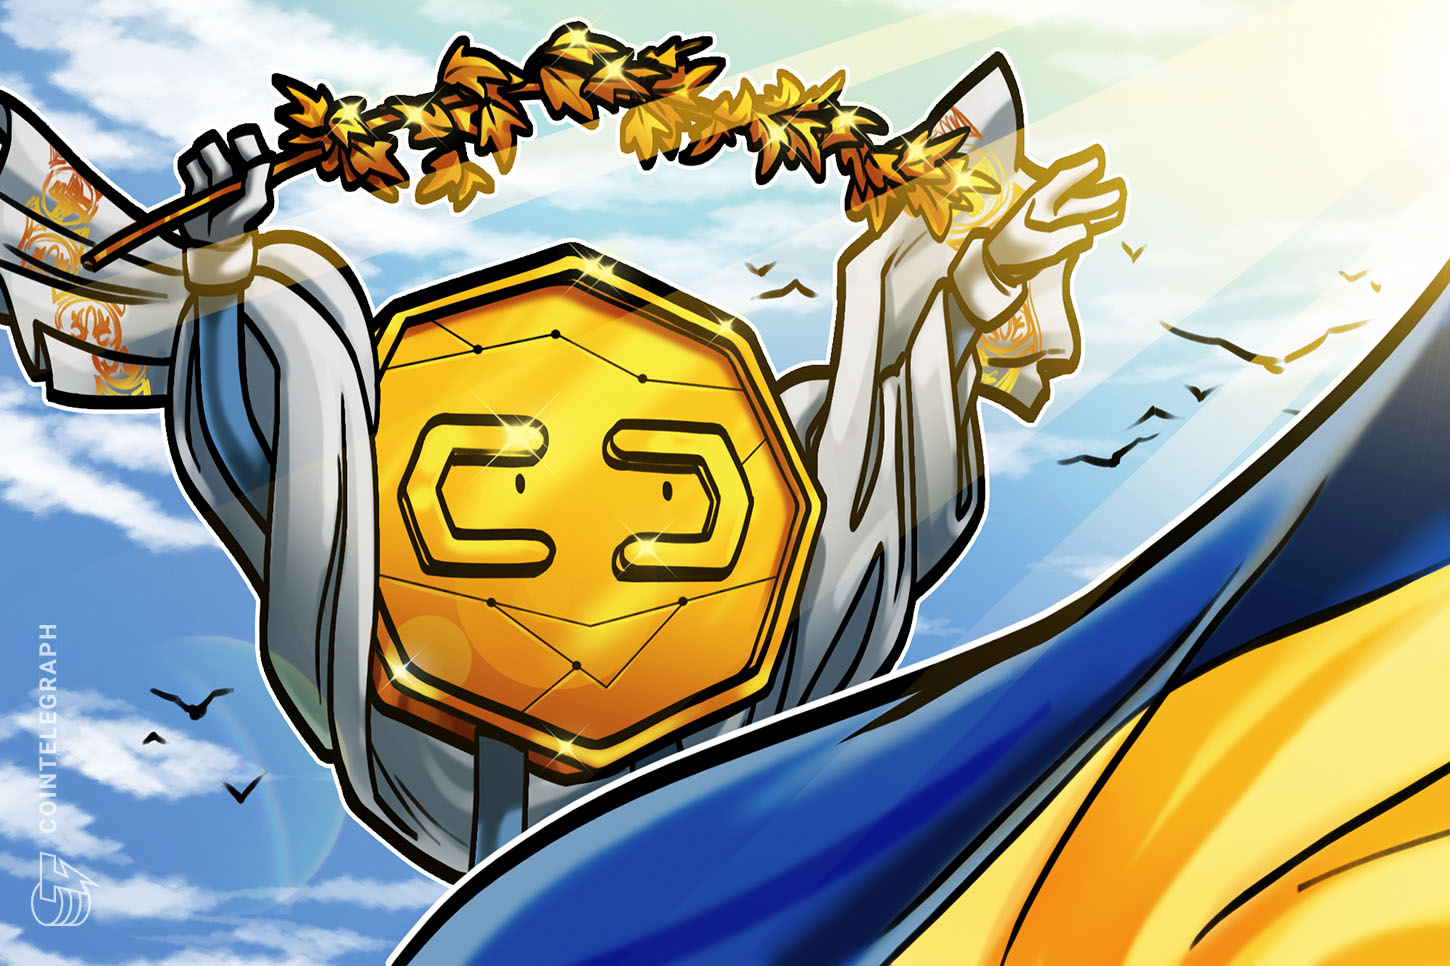 Ukraine central bank now officially allowed to issue digital currency